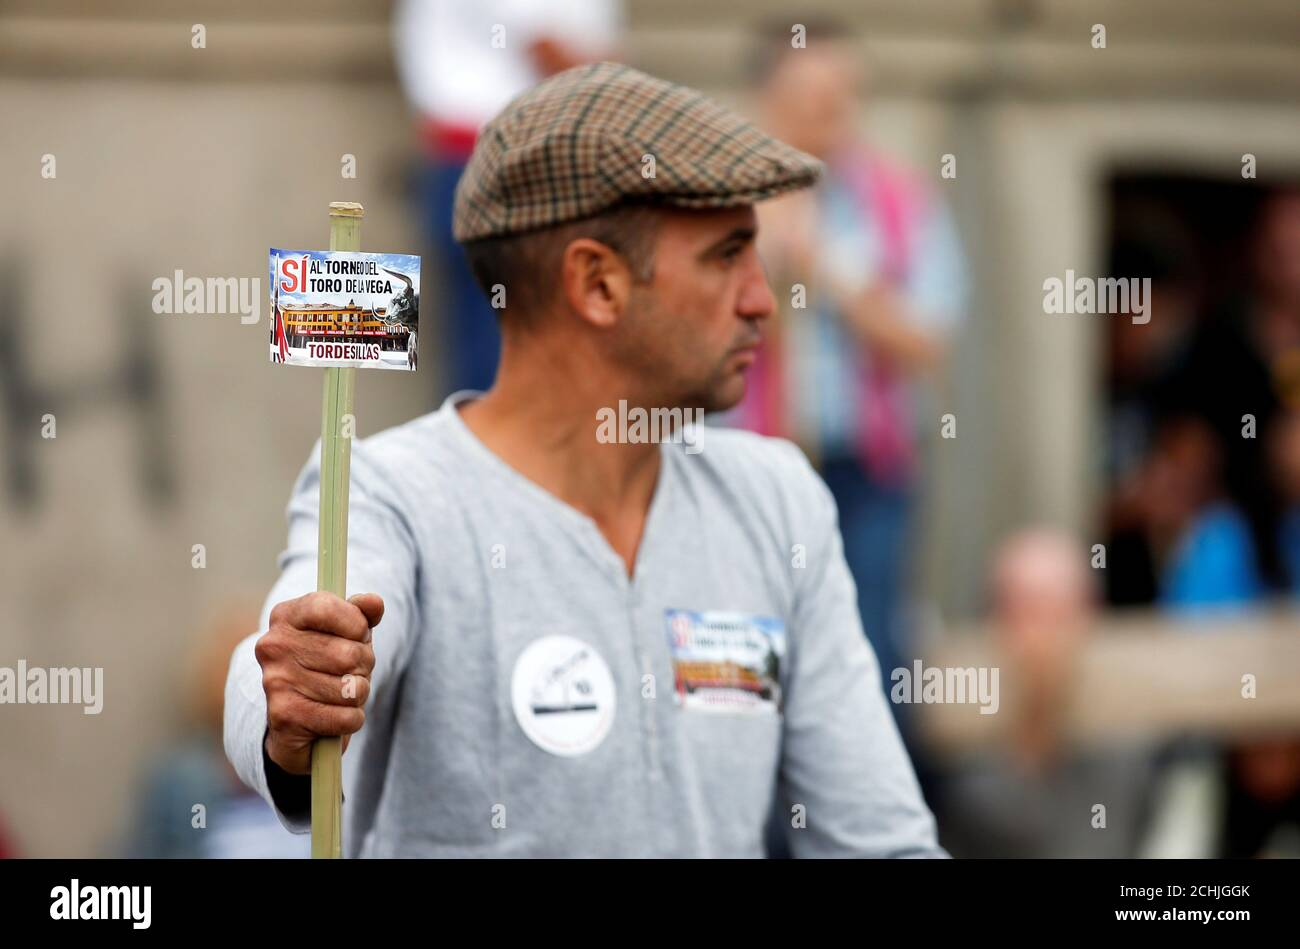 A Reveller On A Horse Holds A Stick Showing A Sticker Reading Yes To The Toro